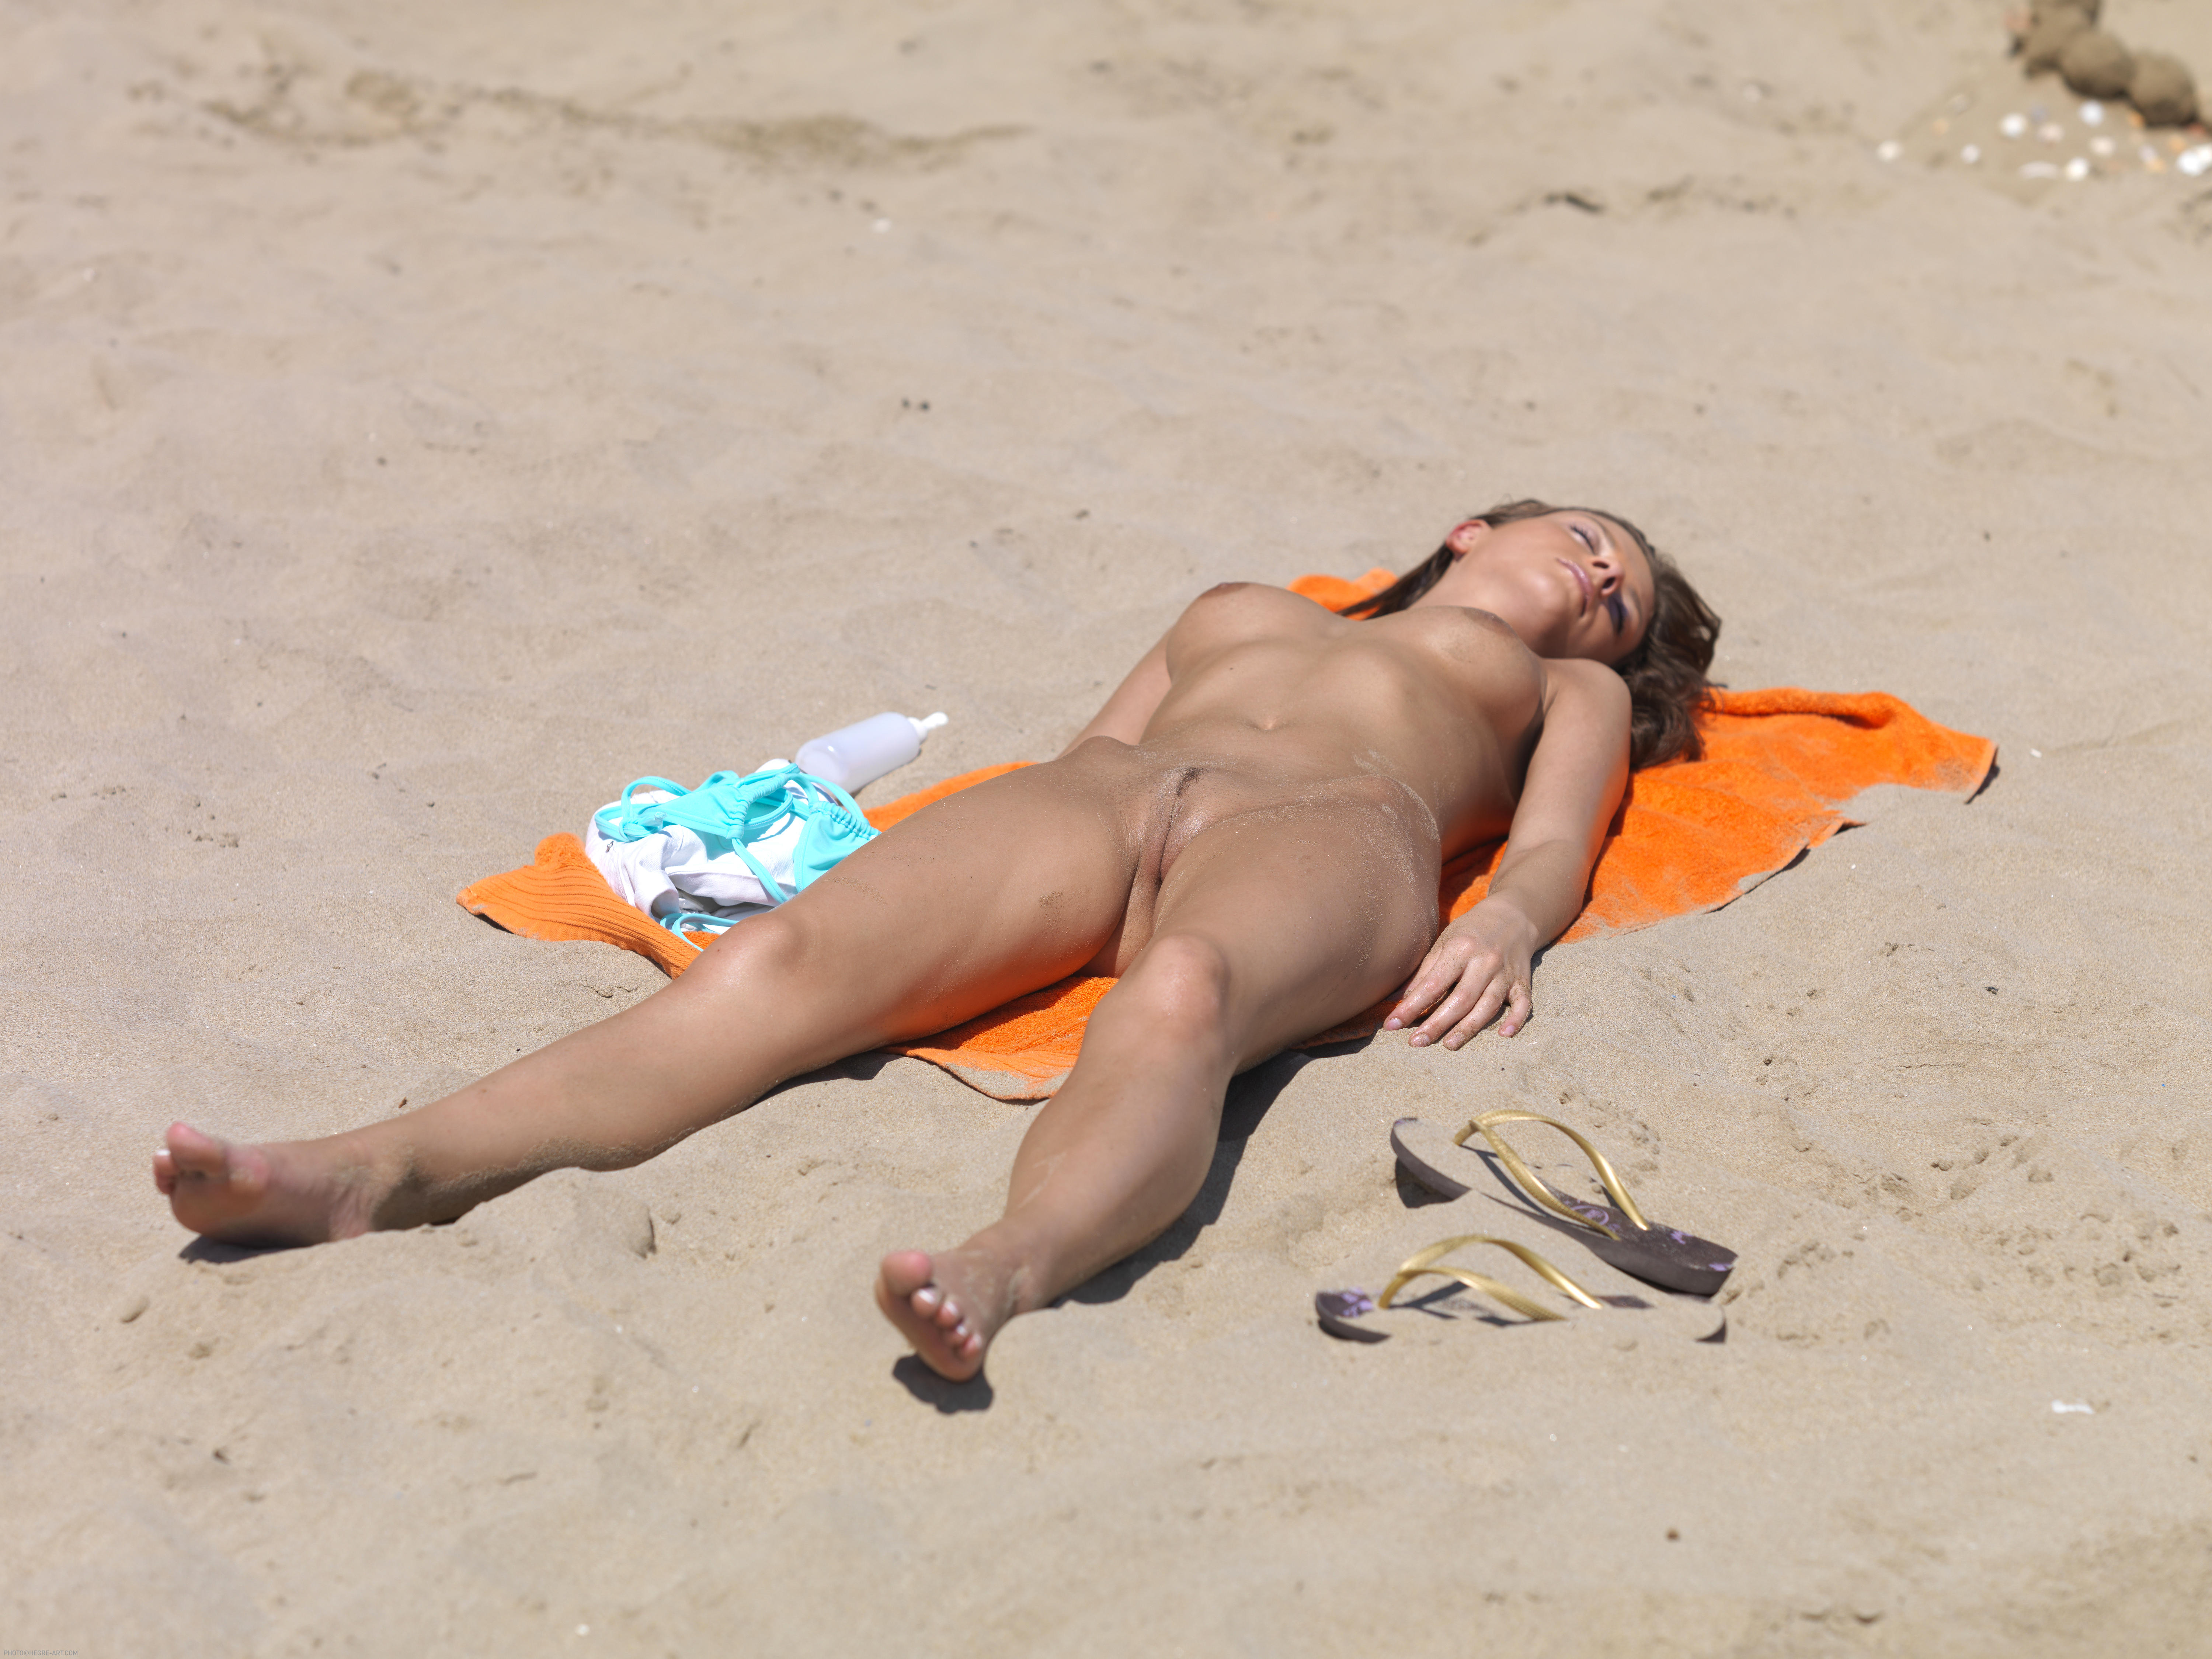 Angela Anderson Visits Haulover Nude Beach on Vimeo